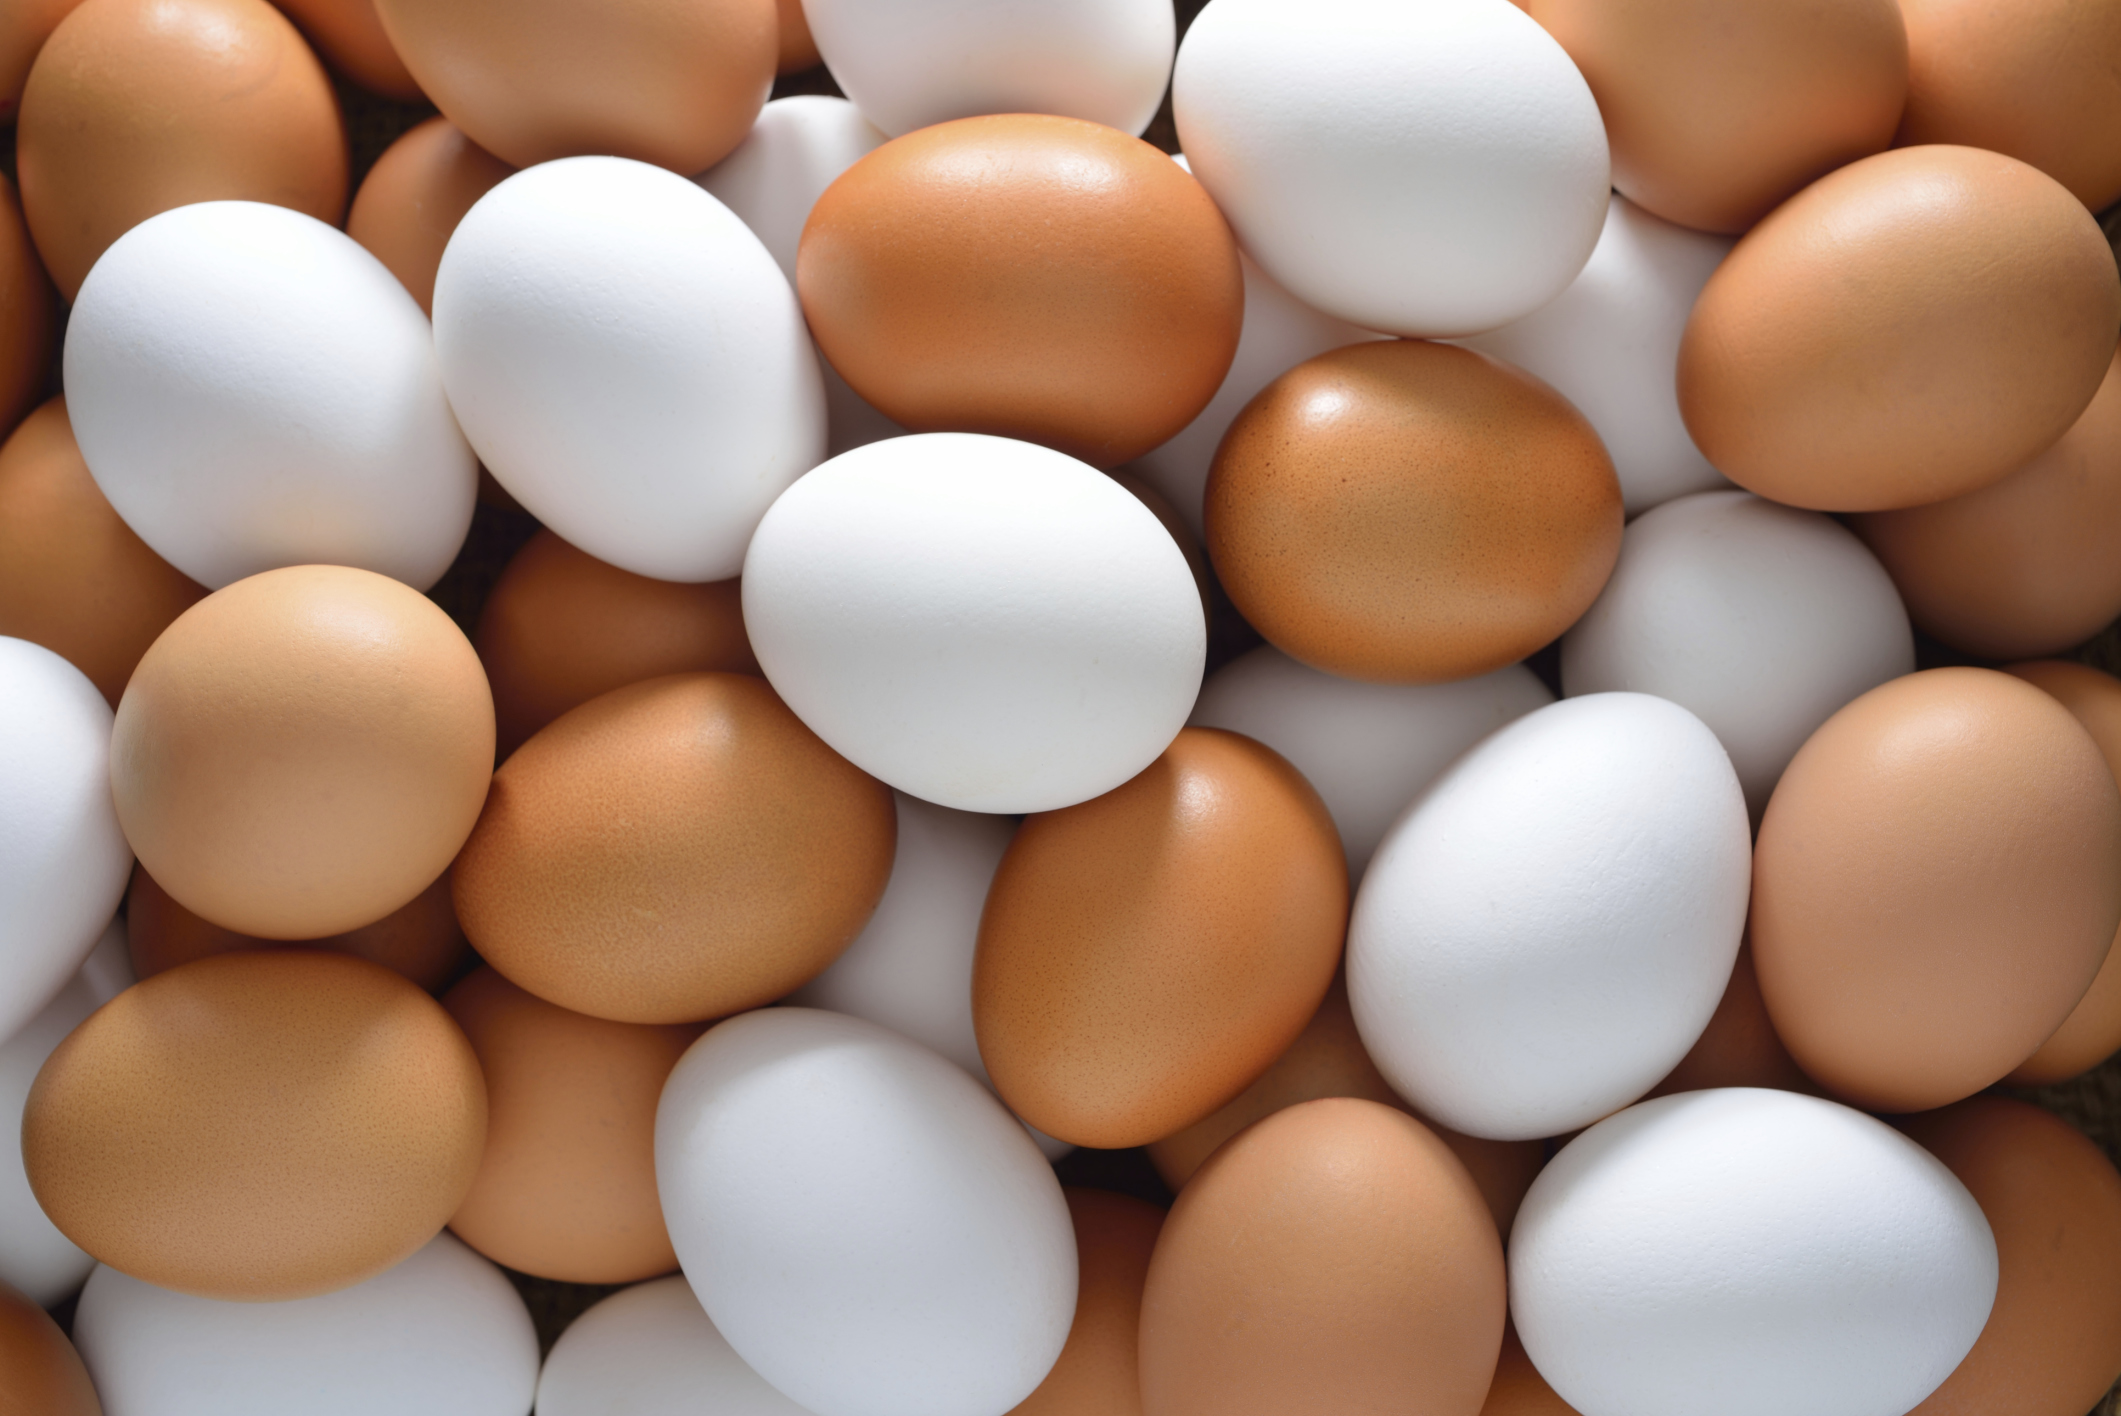 White and Brown Chicken Eggs, Fresh Table Eggs,Parrot eggs